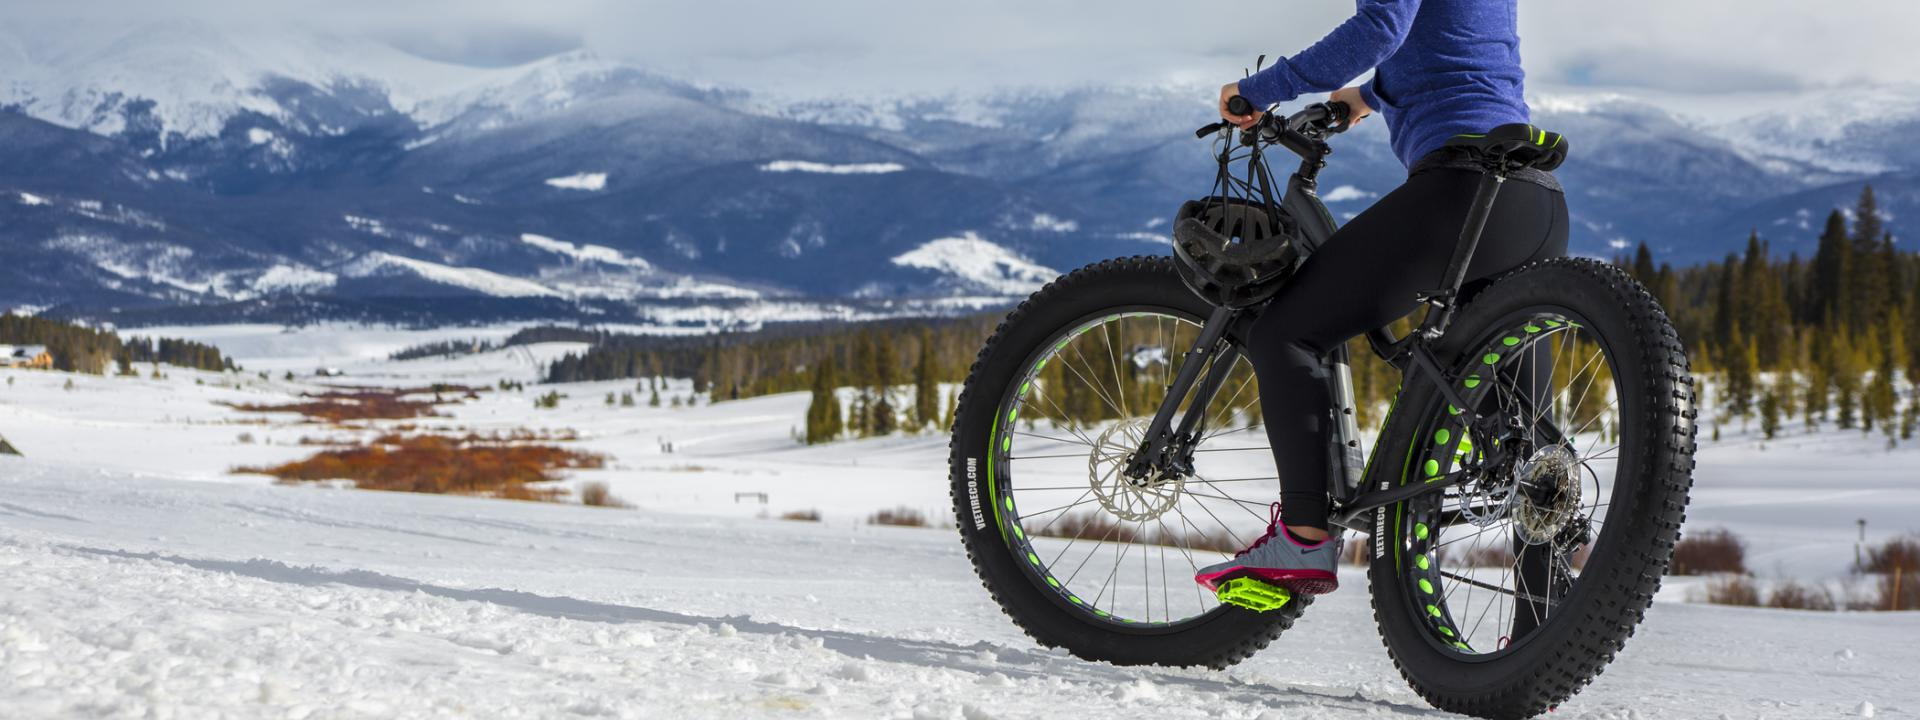 Fat Bike Fat Bikes Winter Park Colorado